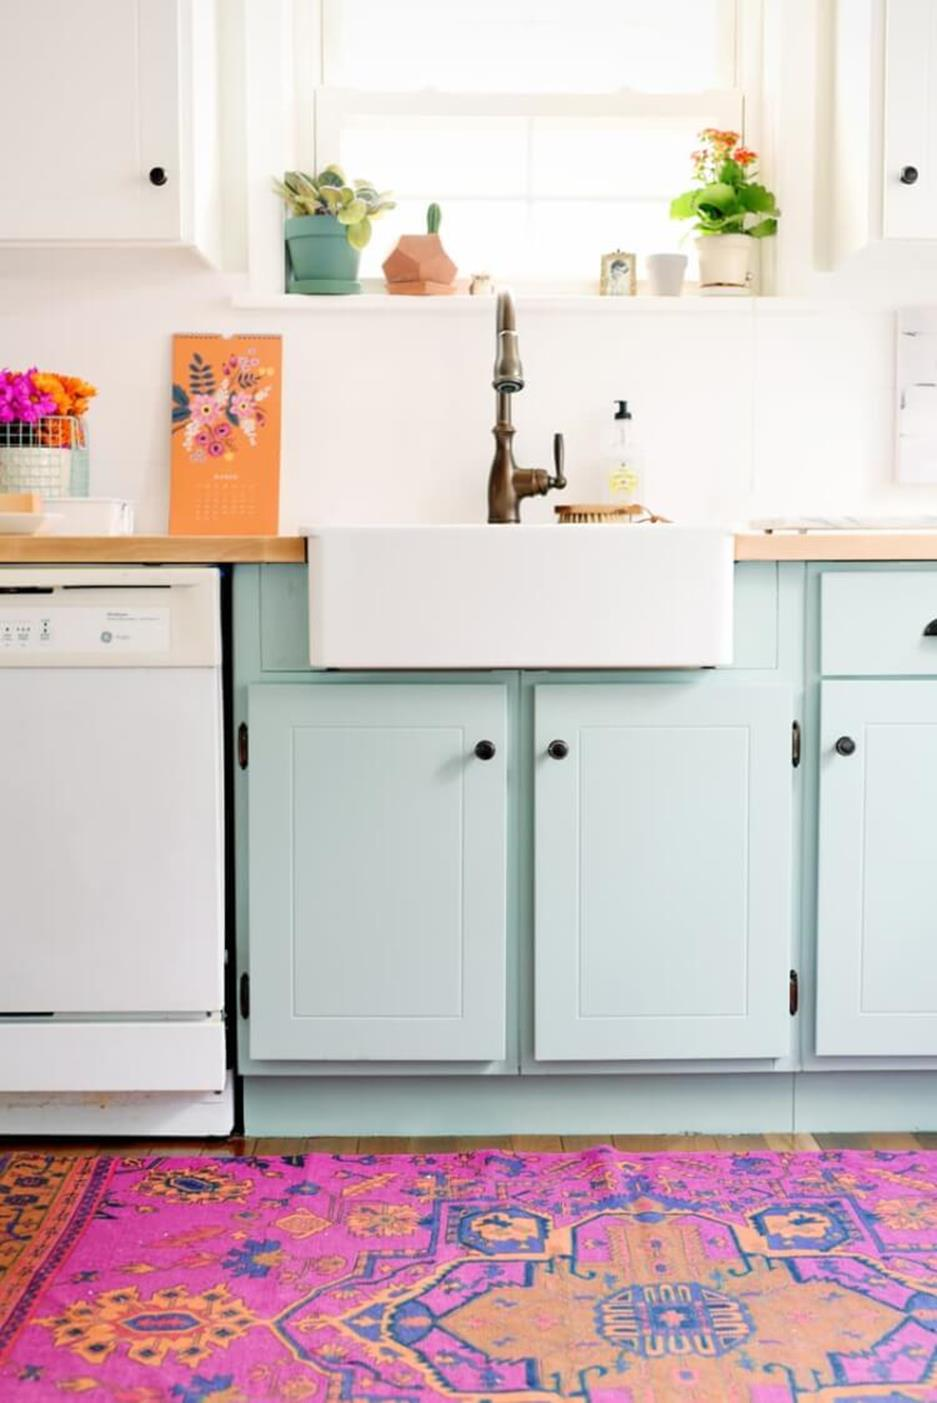 Projects to Make Kitchen More Neat and Beautiful 9